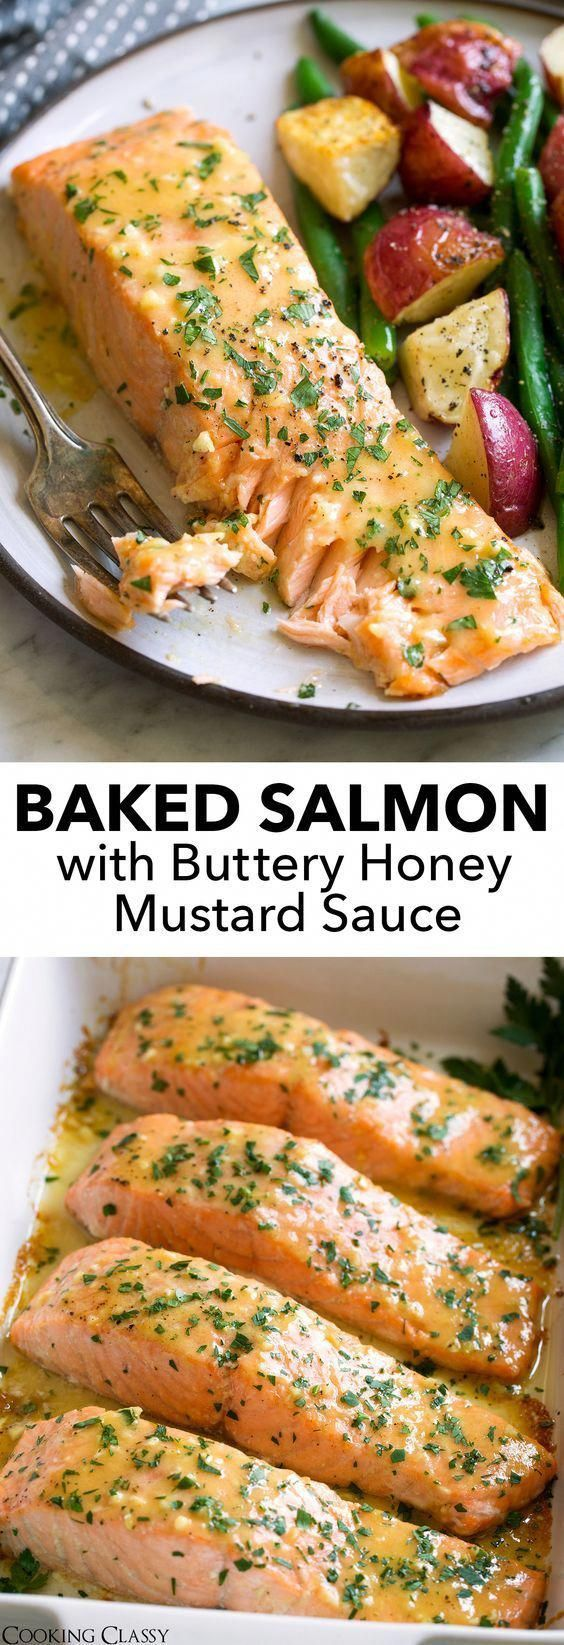 Salmon with Buttery Honey Mustard Sauce - This is the easiest Baked Salmon with a sweet and tangy Buttery Honey Mustard Sauce! This recipe requires minimal effort, ONLY 5 basic ingredients, and the flavor is perfectly delicious. via @cookingclassy